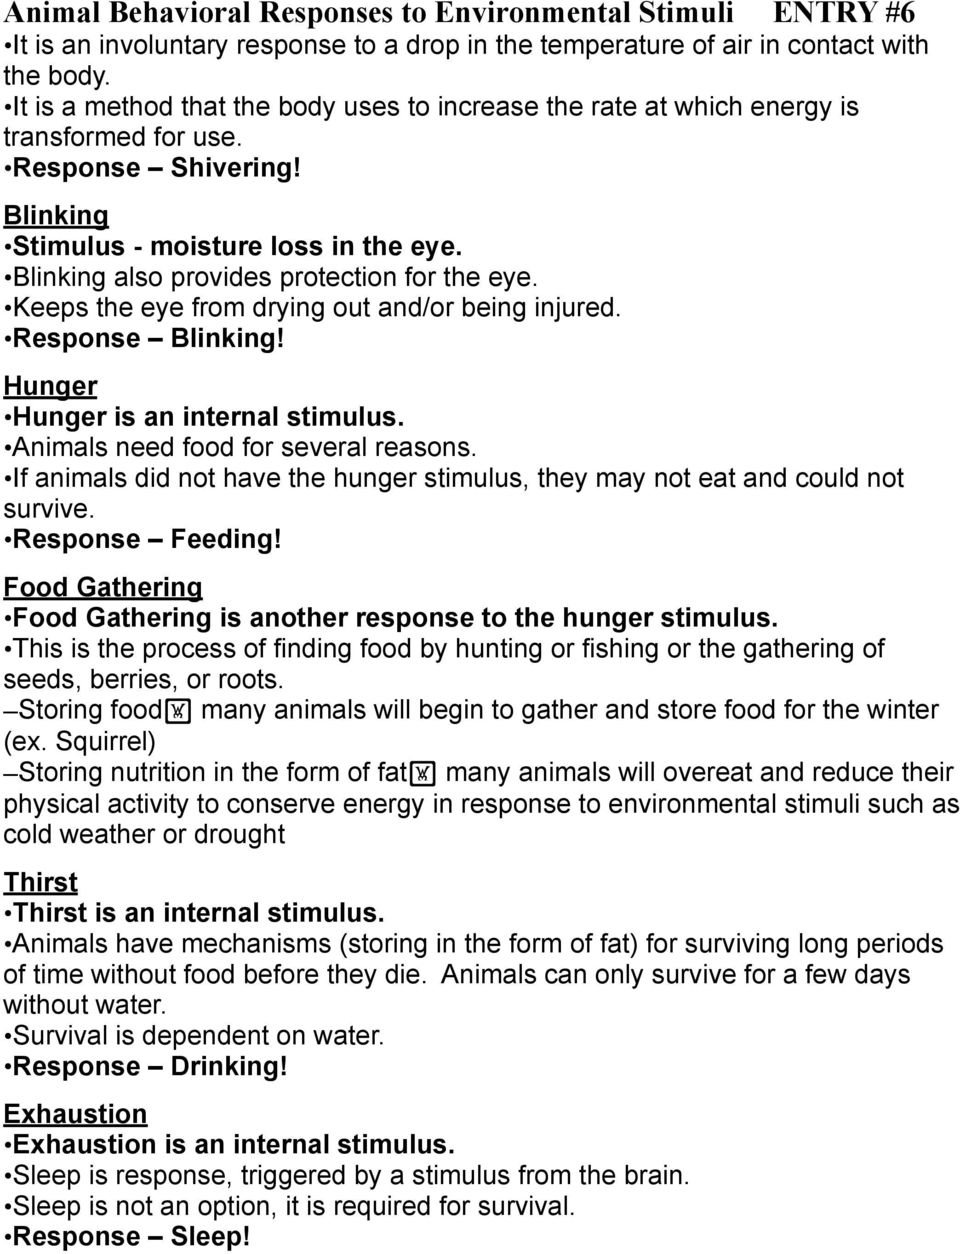 Hunger Hunger is an internal stimulus. Animals need food for several reasons. If animals did not have the hunger stimulus, they may not eat and could not survive. Response Feeding!